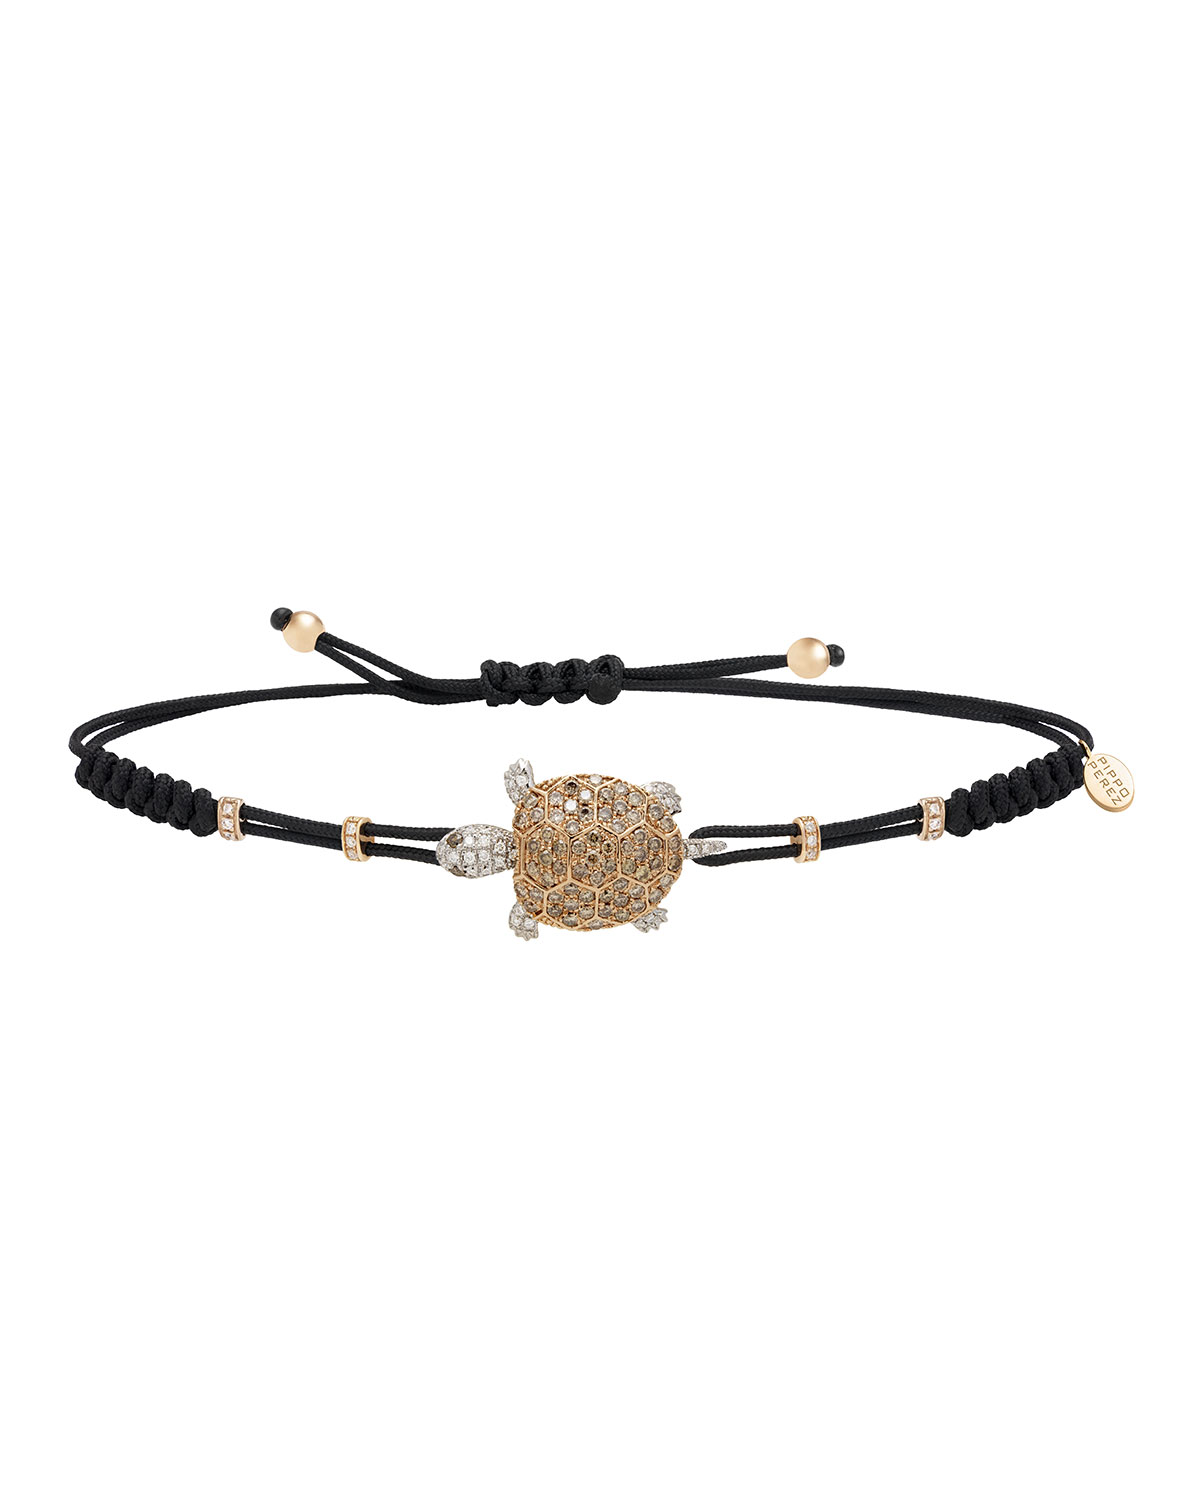 PIPPO PEREZ Pull-Cord Bracelet With Brown Diamond Turtle In 18K Gold